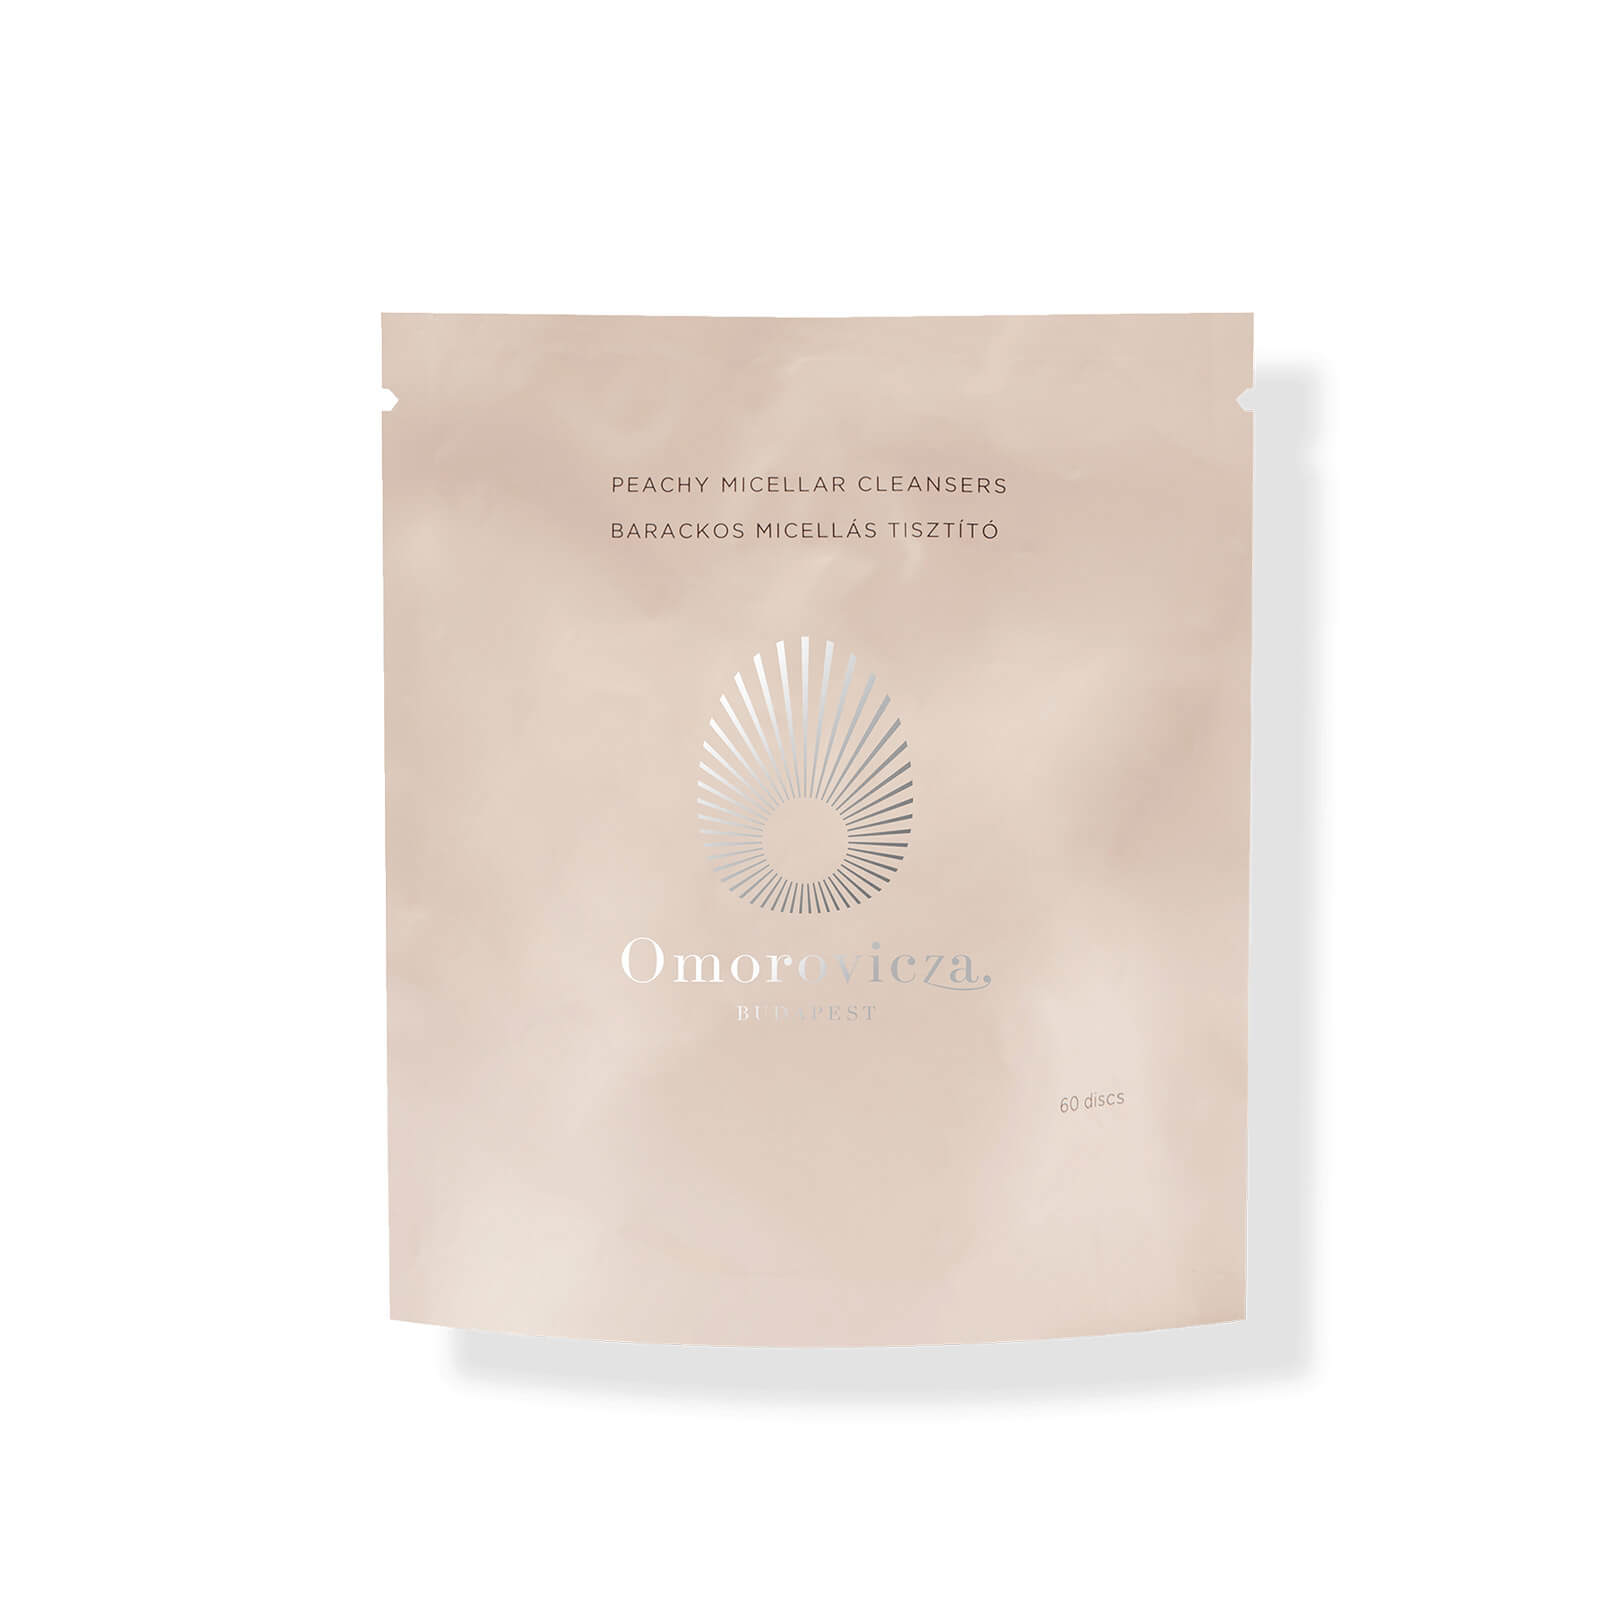 Omorovicza Peachy Micellar Cleansers Refill g